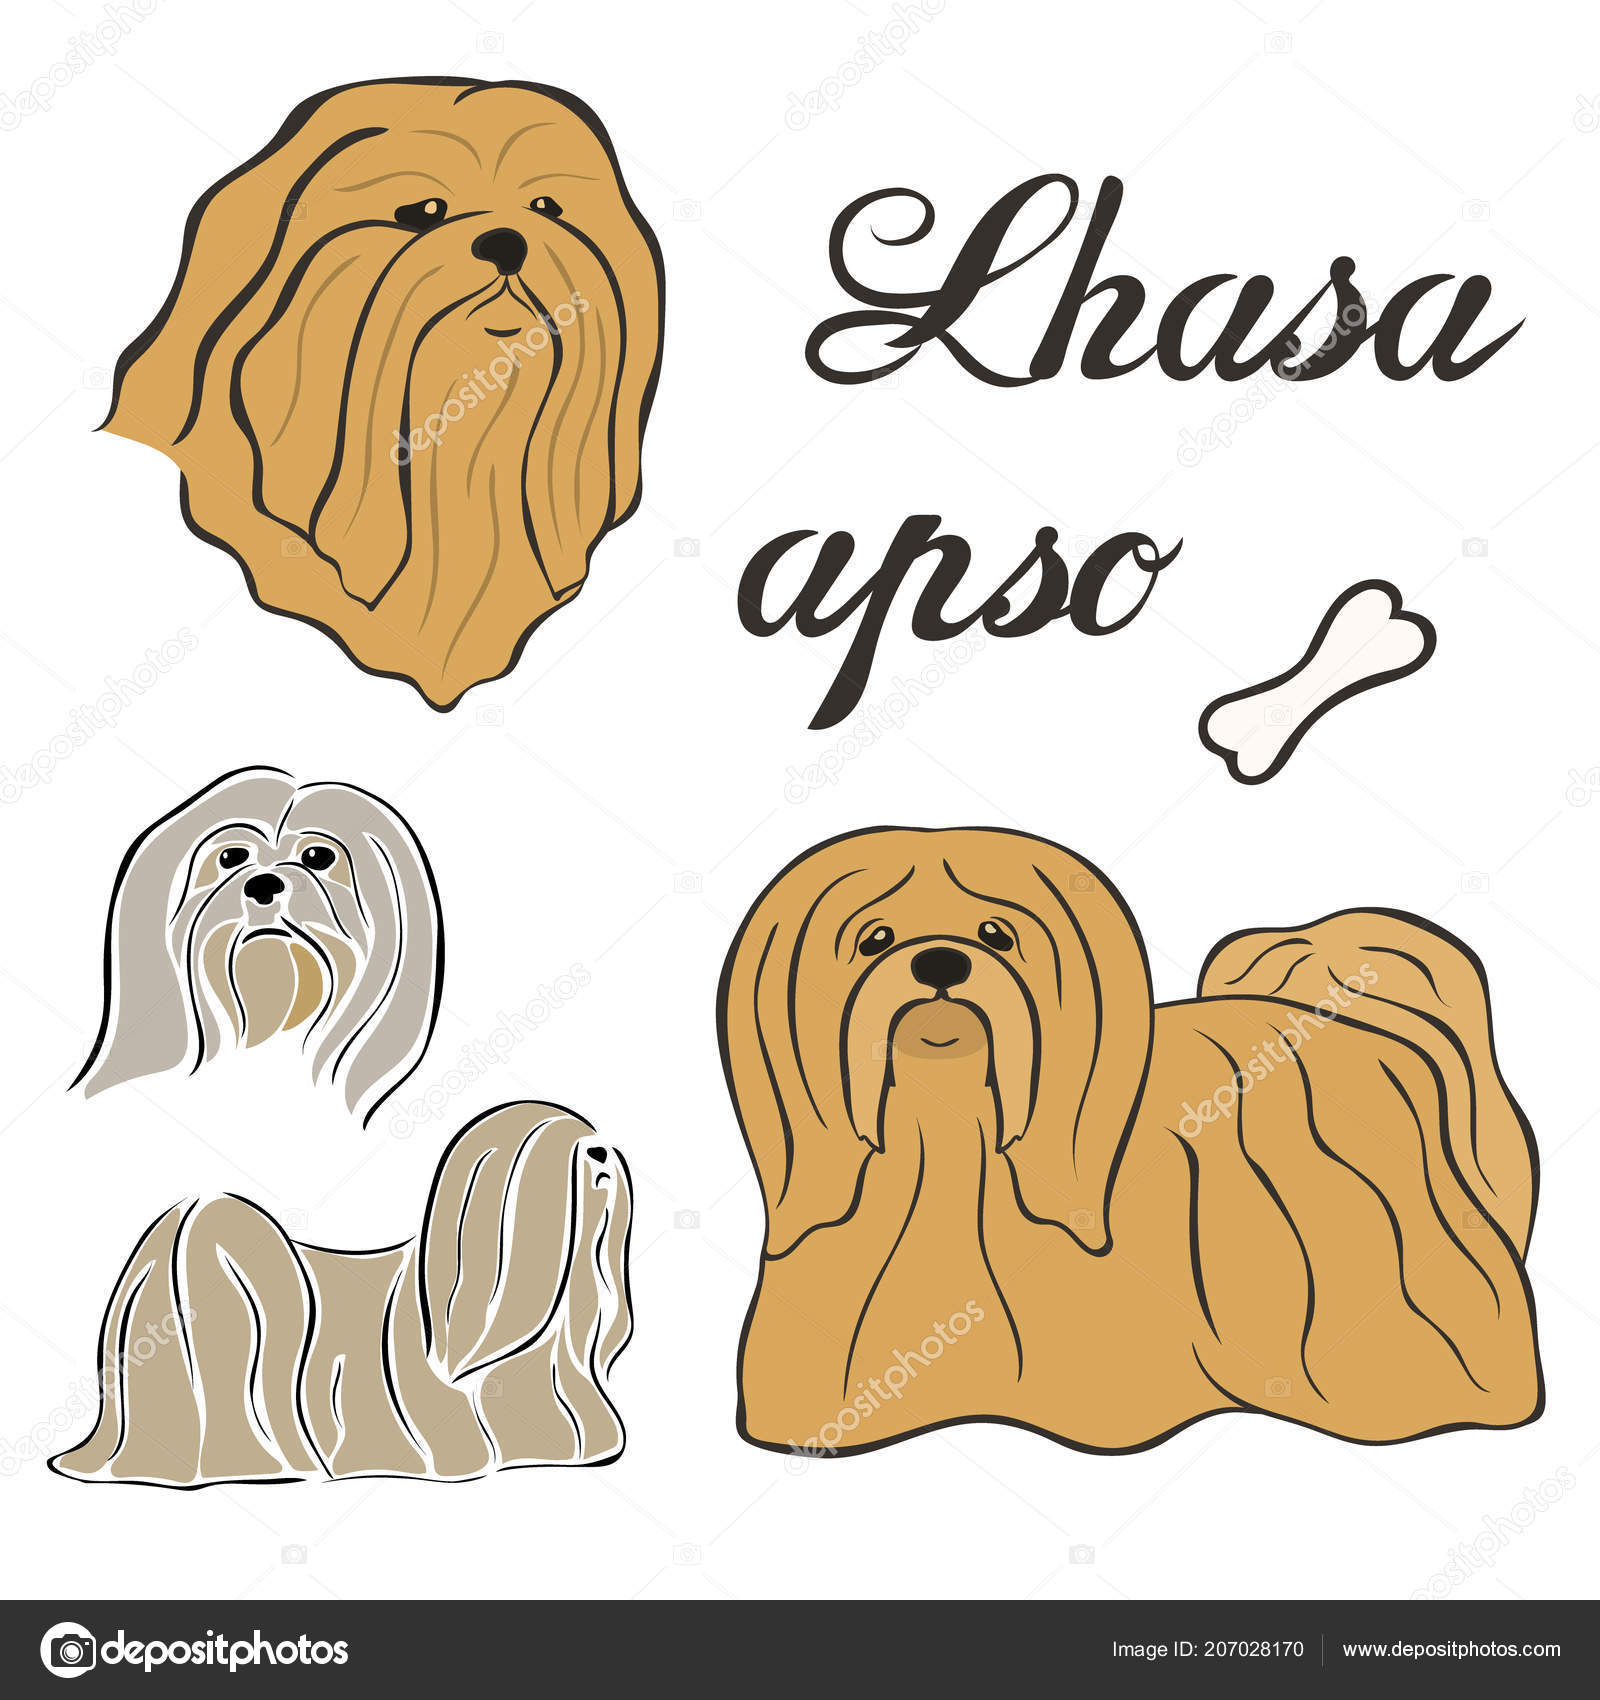 Lhasa Apso Dog Breed Vector Illustration Set Isolated Doggy Image